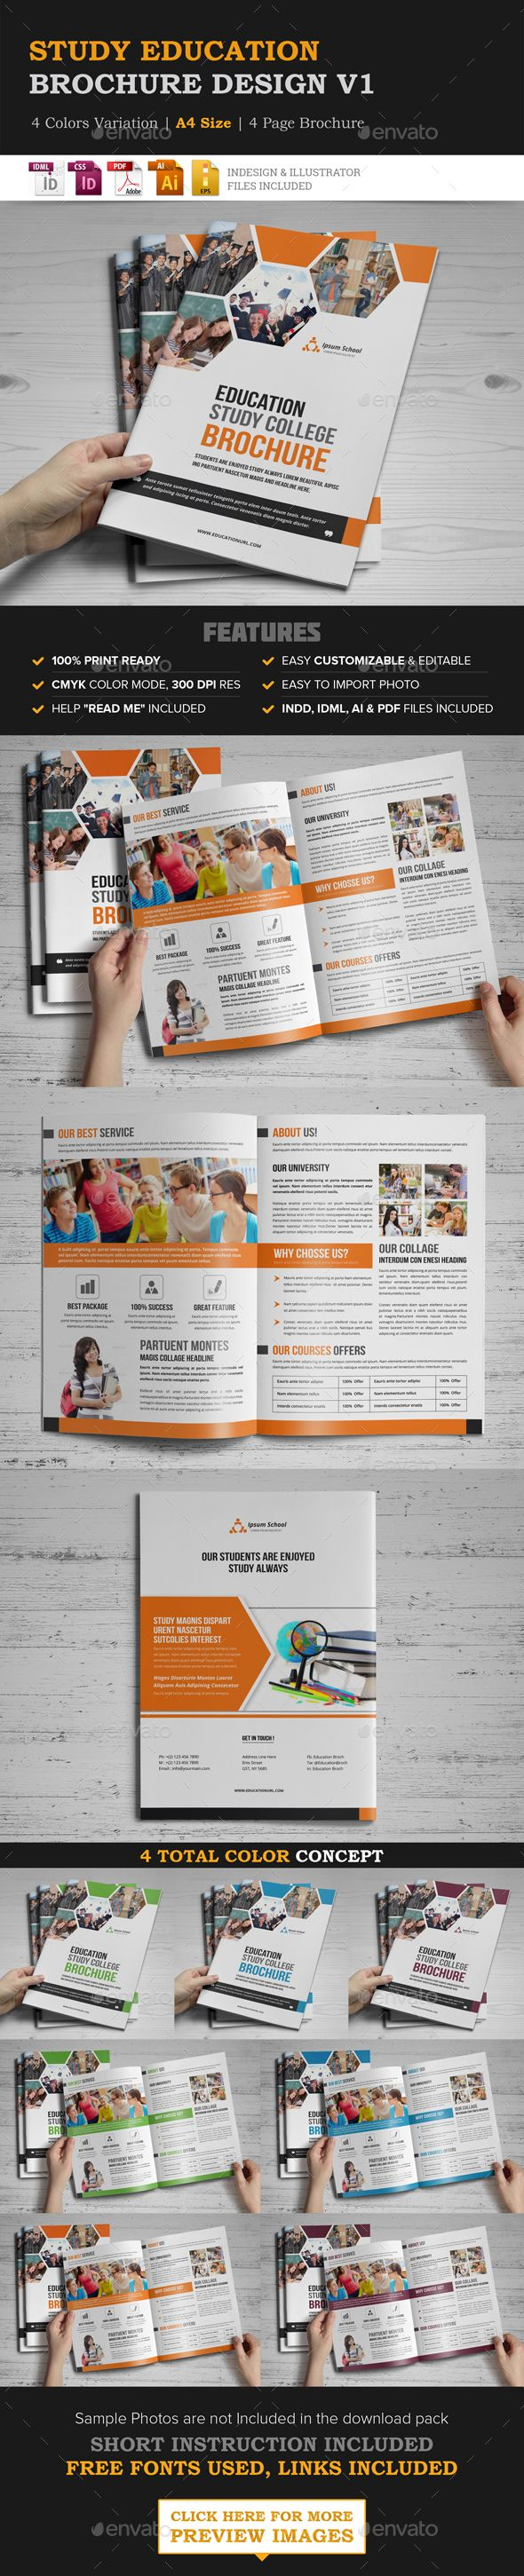 Education Brochure Design Template Vector EPS, InDesign INDD, AI Illustrator. Download here: http://graphicriver.net/item/education-brochure-design/16597539?ref=ksioks